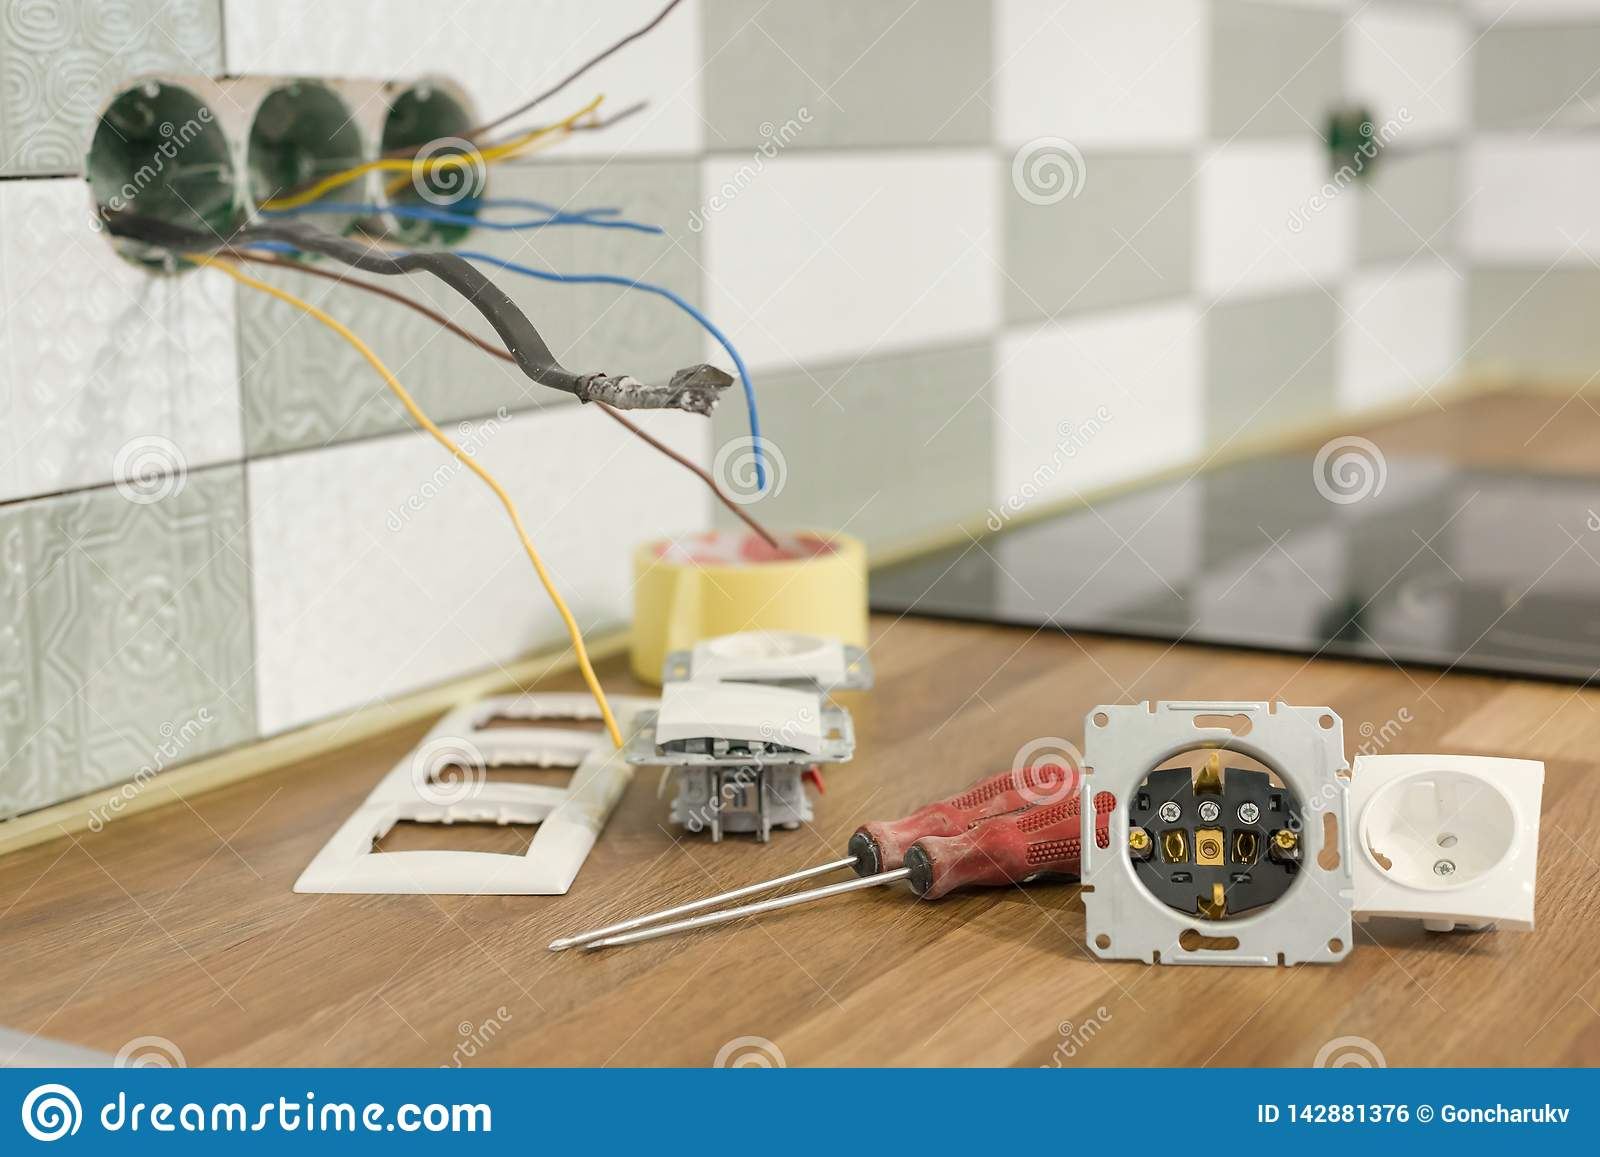 Install Electrical Outlet >> Preparing To Install An Electrical Outlet Closeup Of Professional